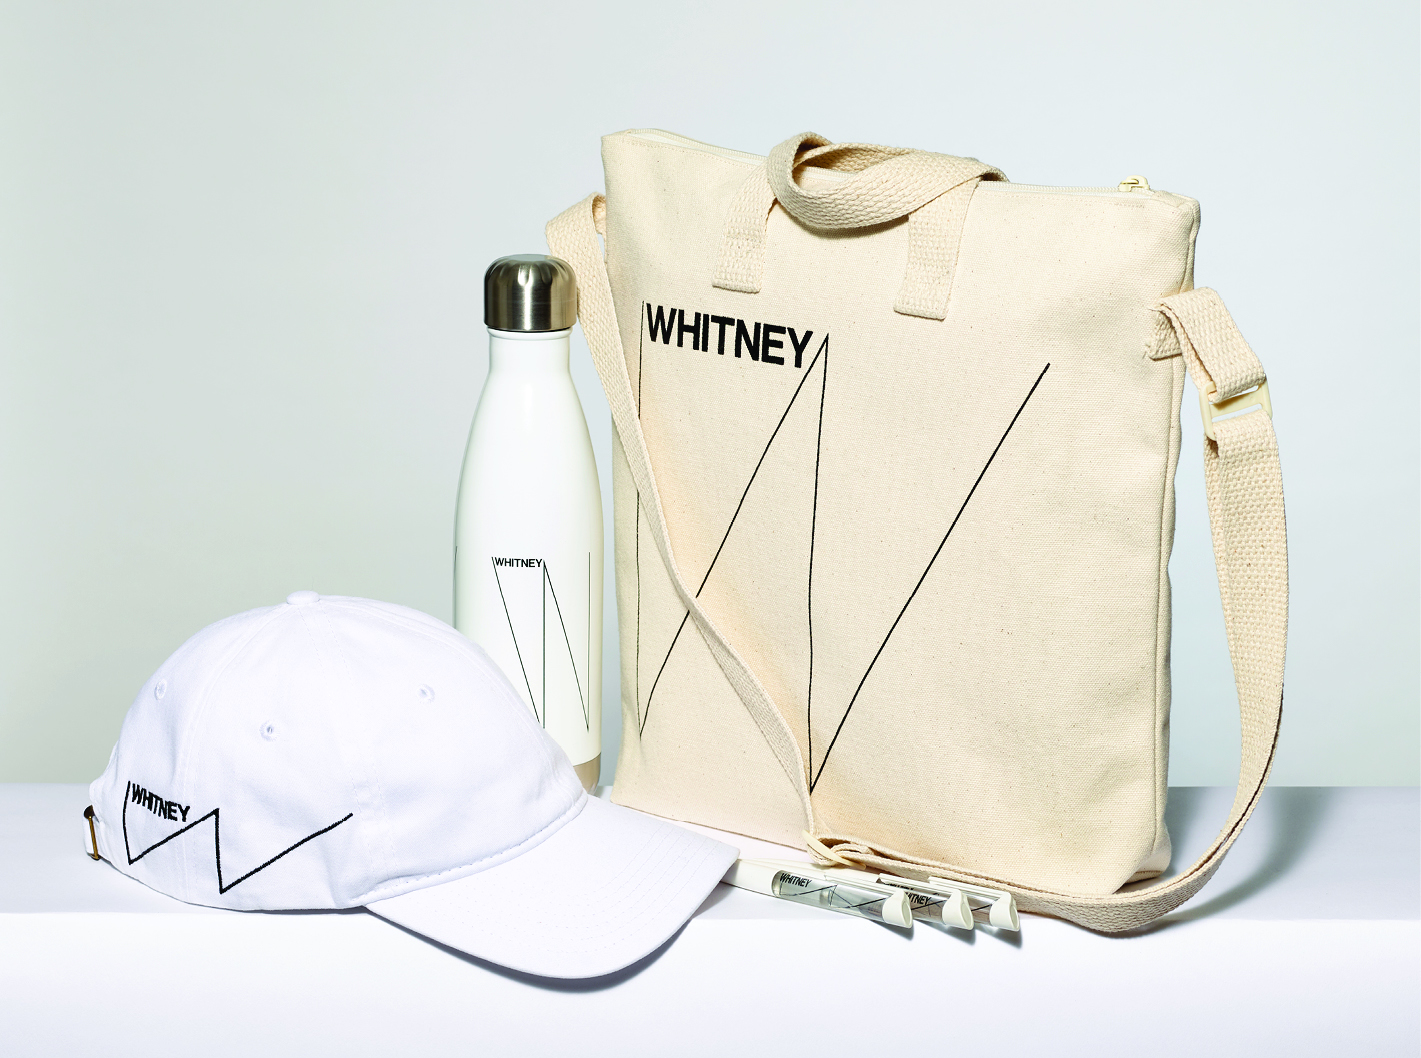 Group of Whitney branded water bottle, tote, and hat